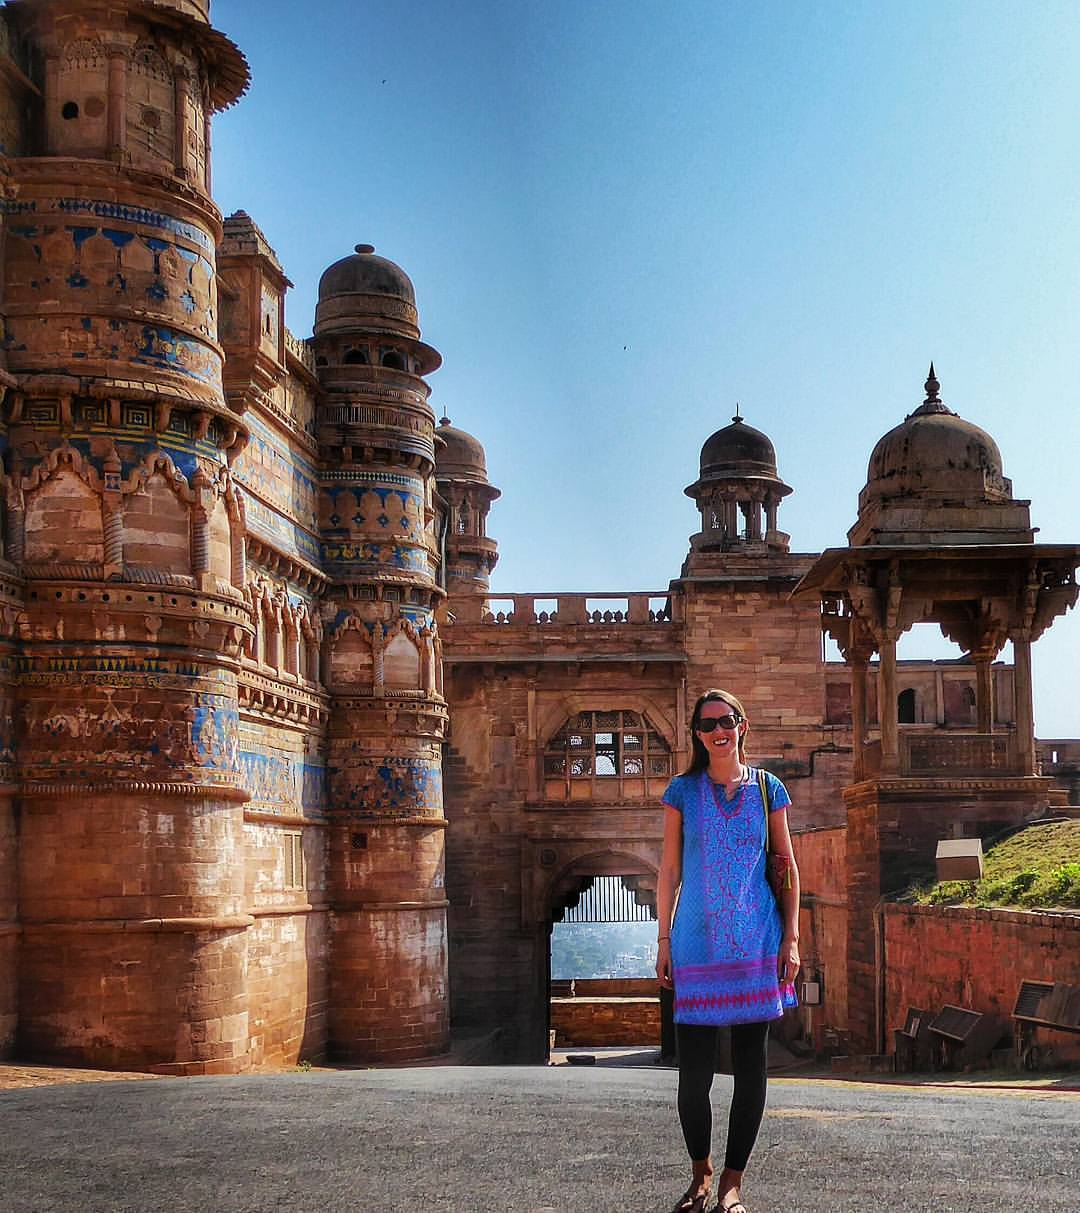 Anna Gwalior Fort, Madhya Pradesh, solo female travel in india, femal travel, women travel in india